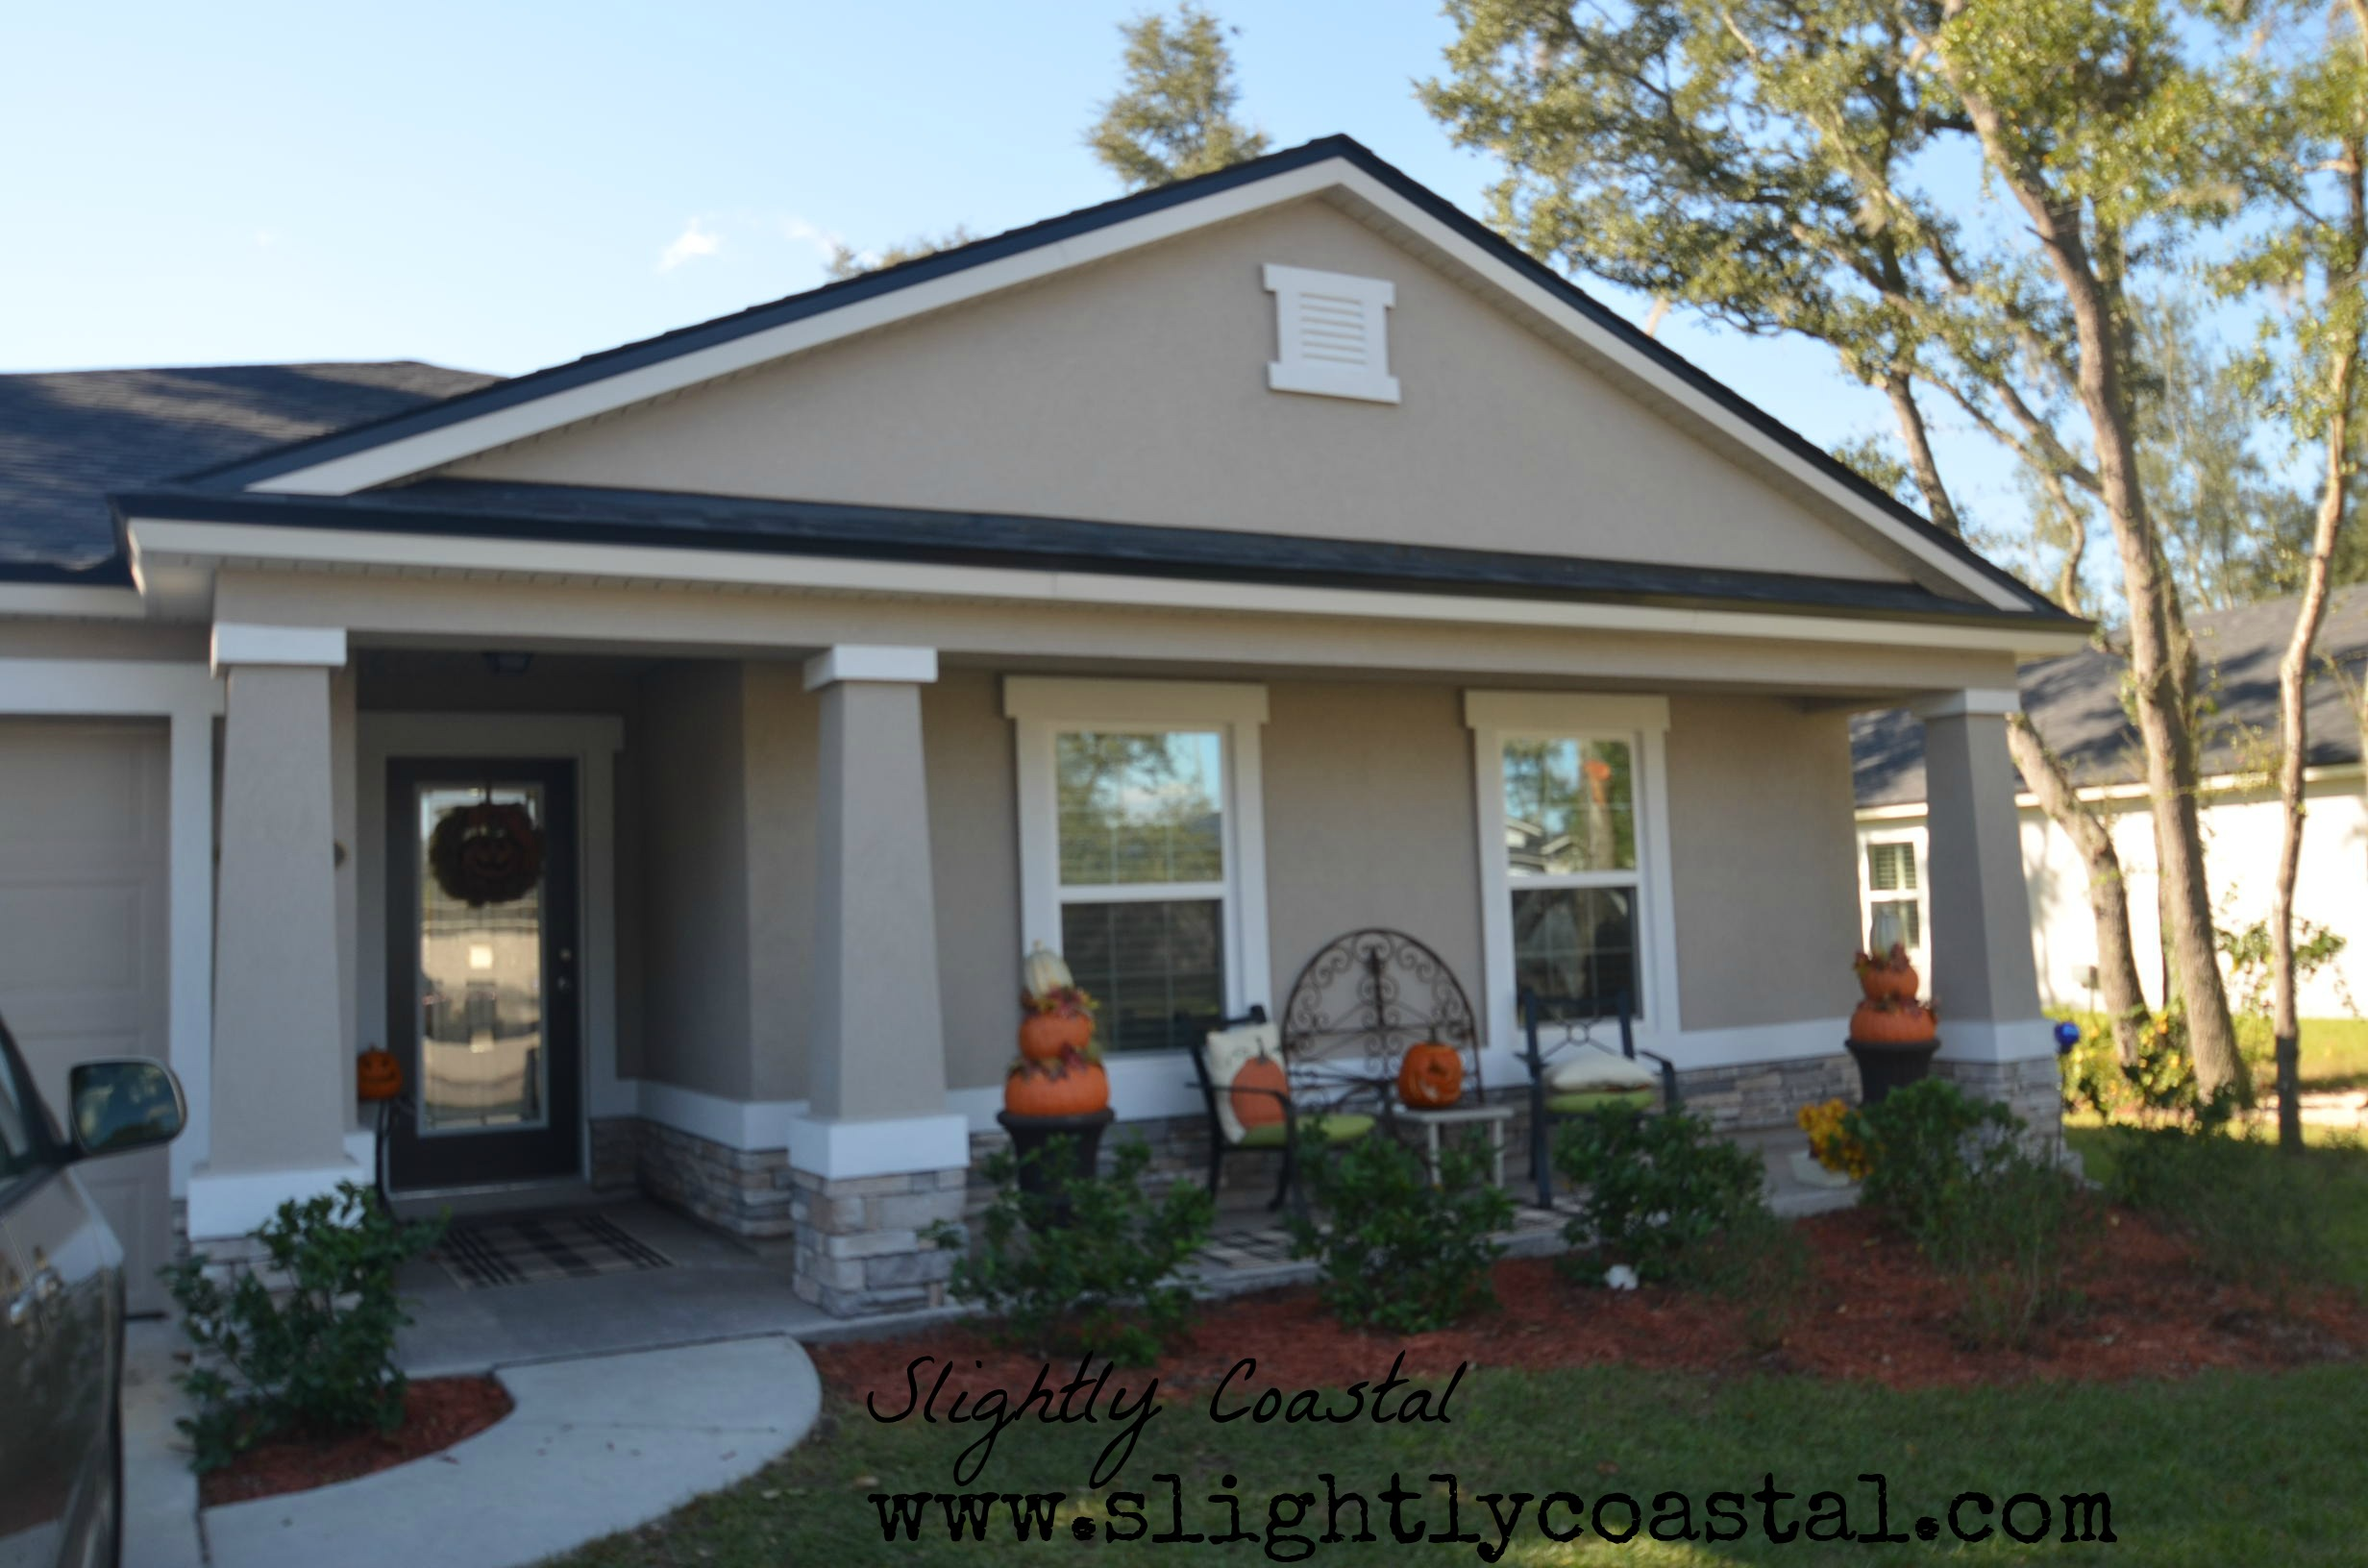 in search of character craftsman style slightly coastal uncategorized